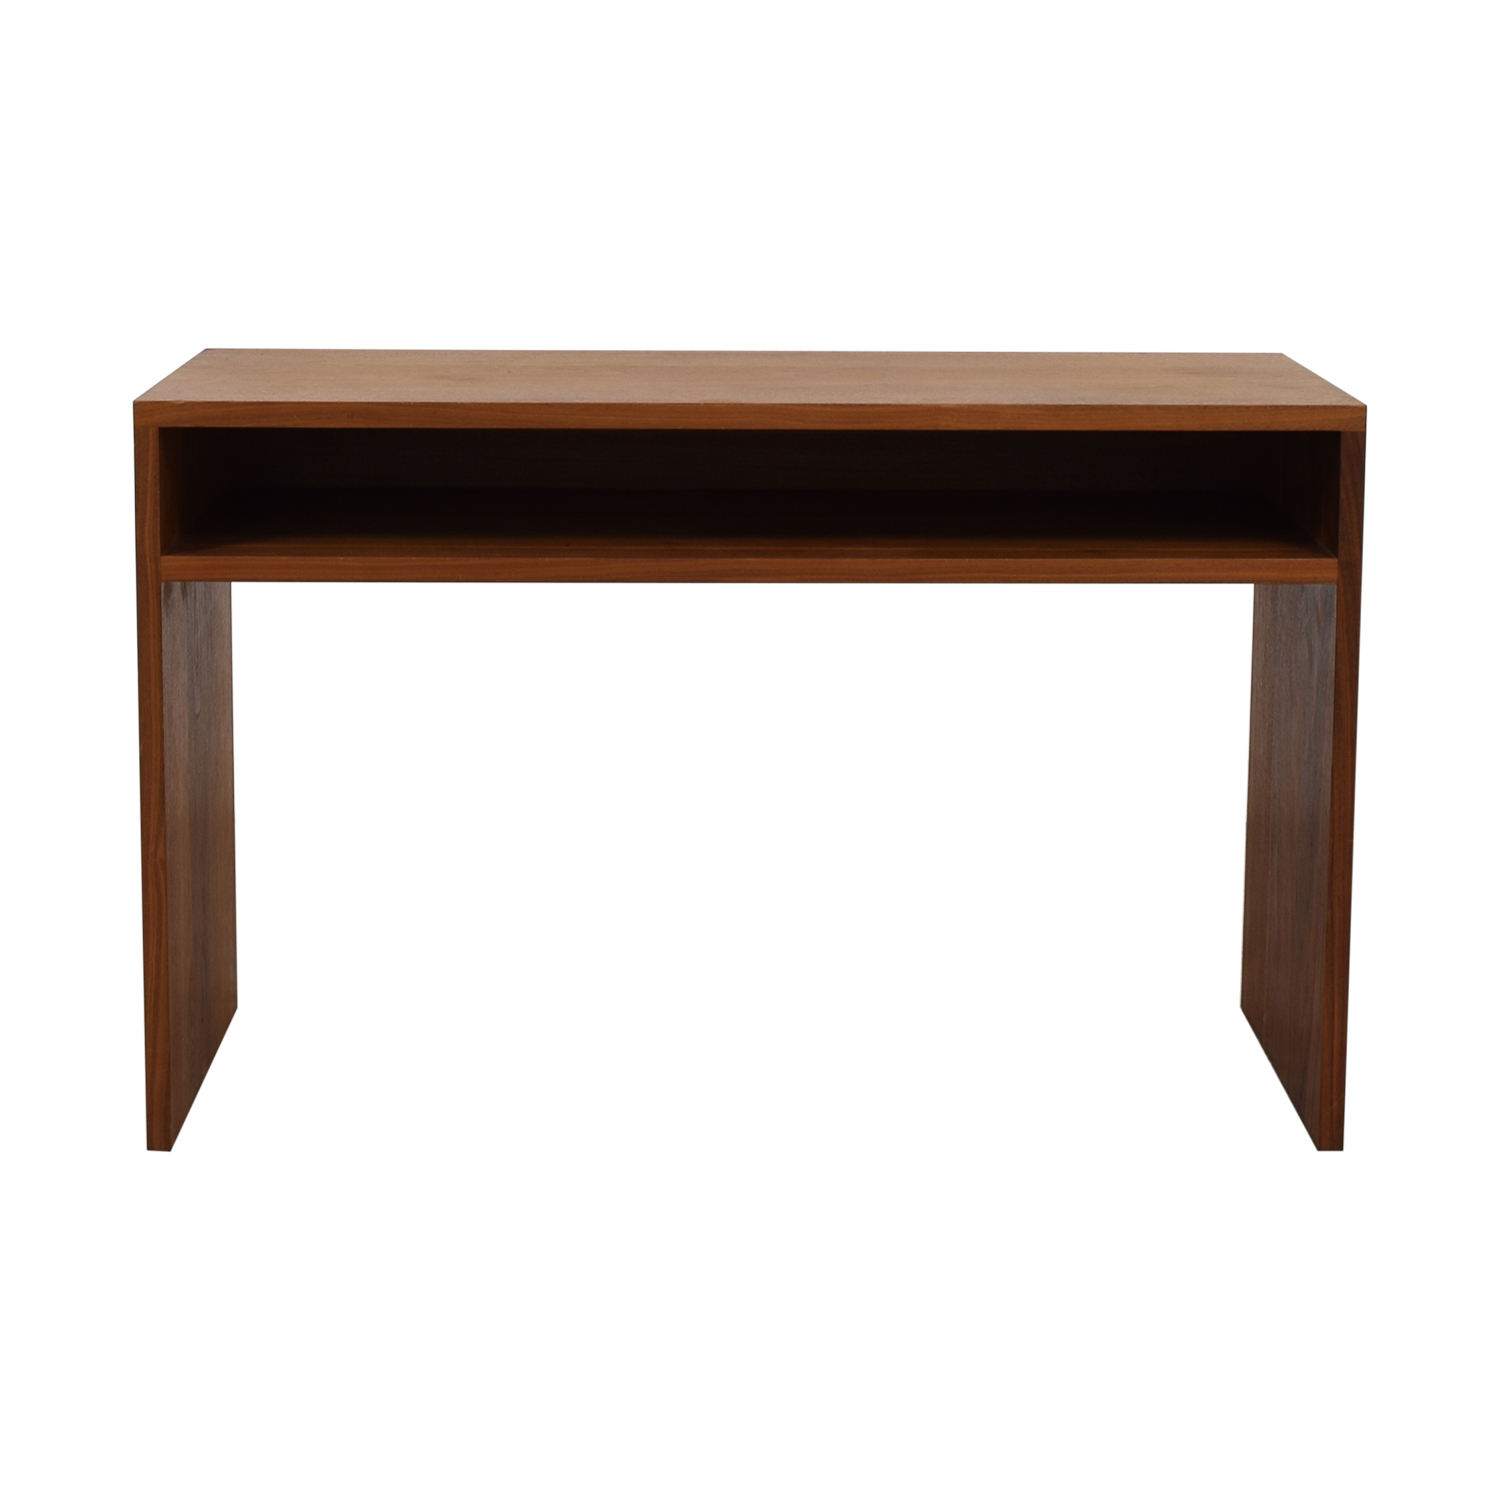 Custom Solid Walnut Desk with Enclosed Shelf Space discount